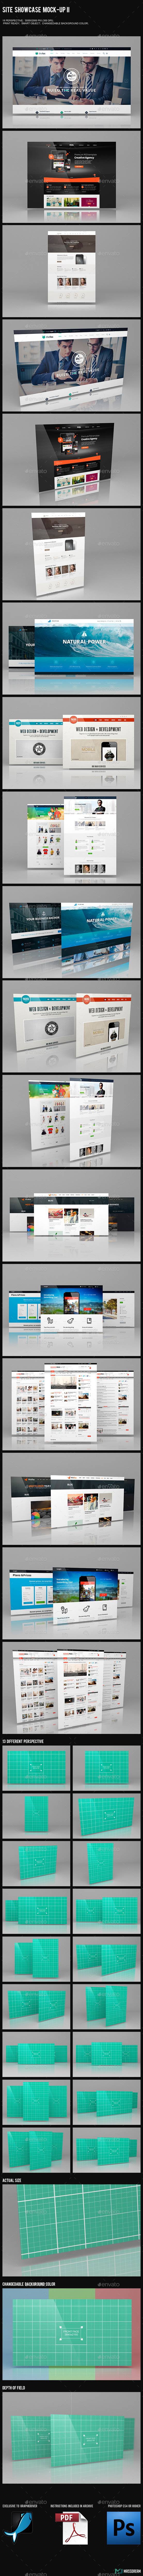 GraphicRiver Site ShowCase Mock-Up II 9338589